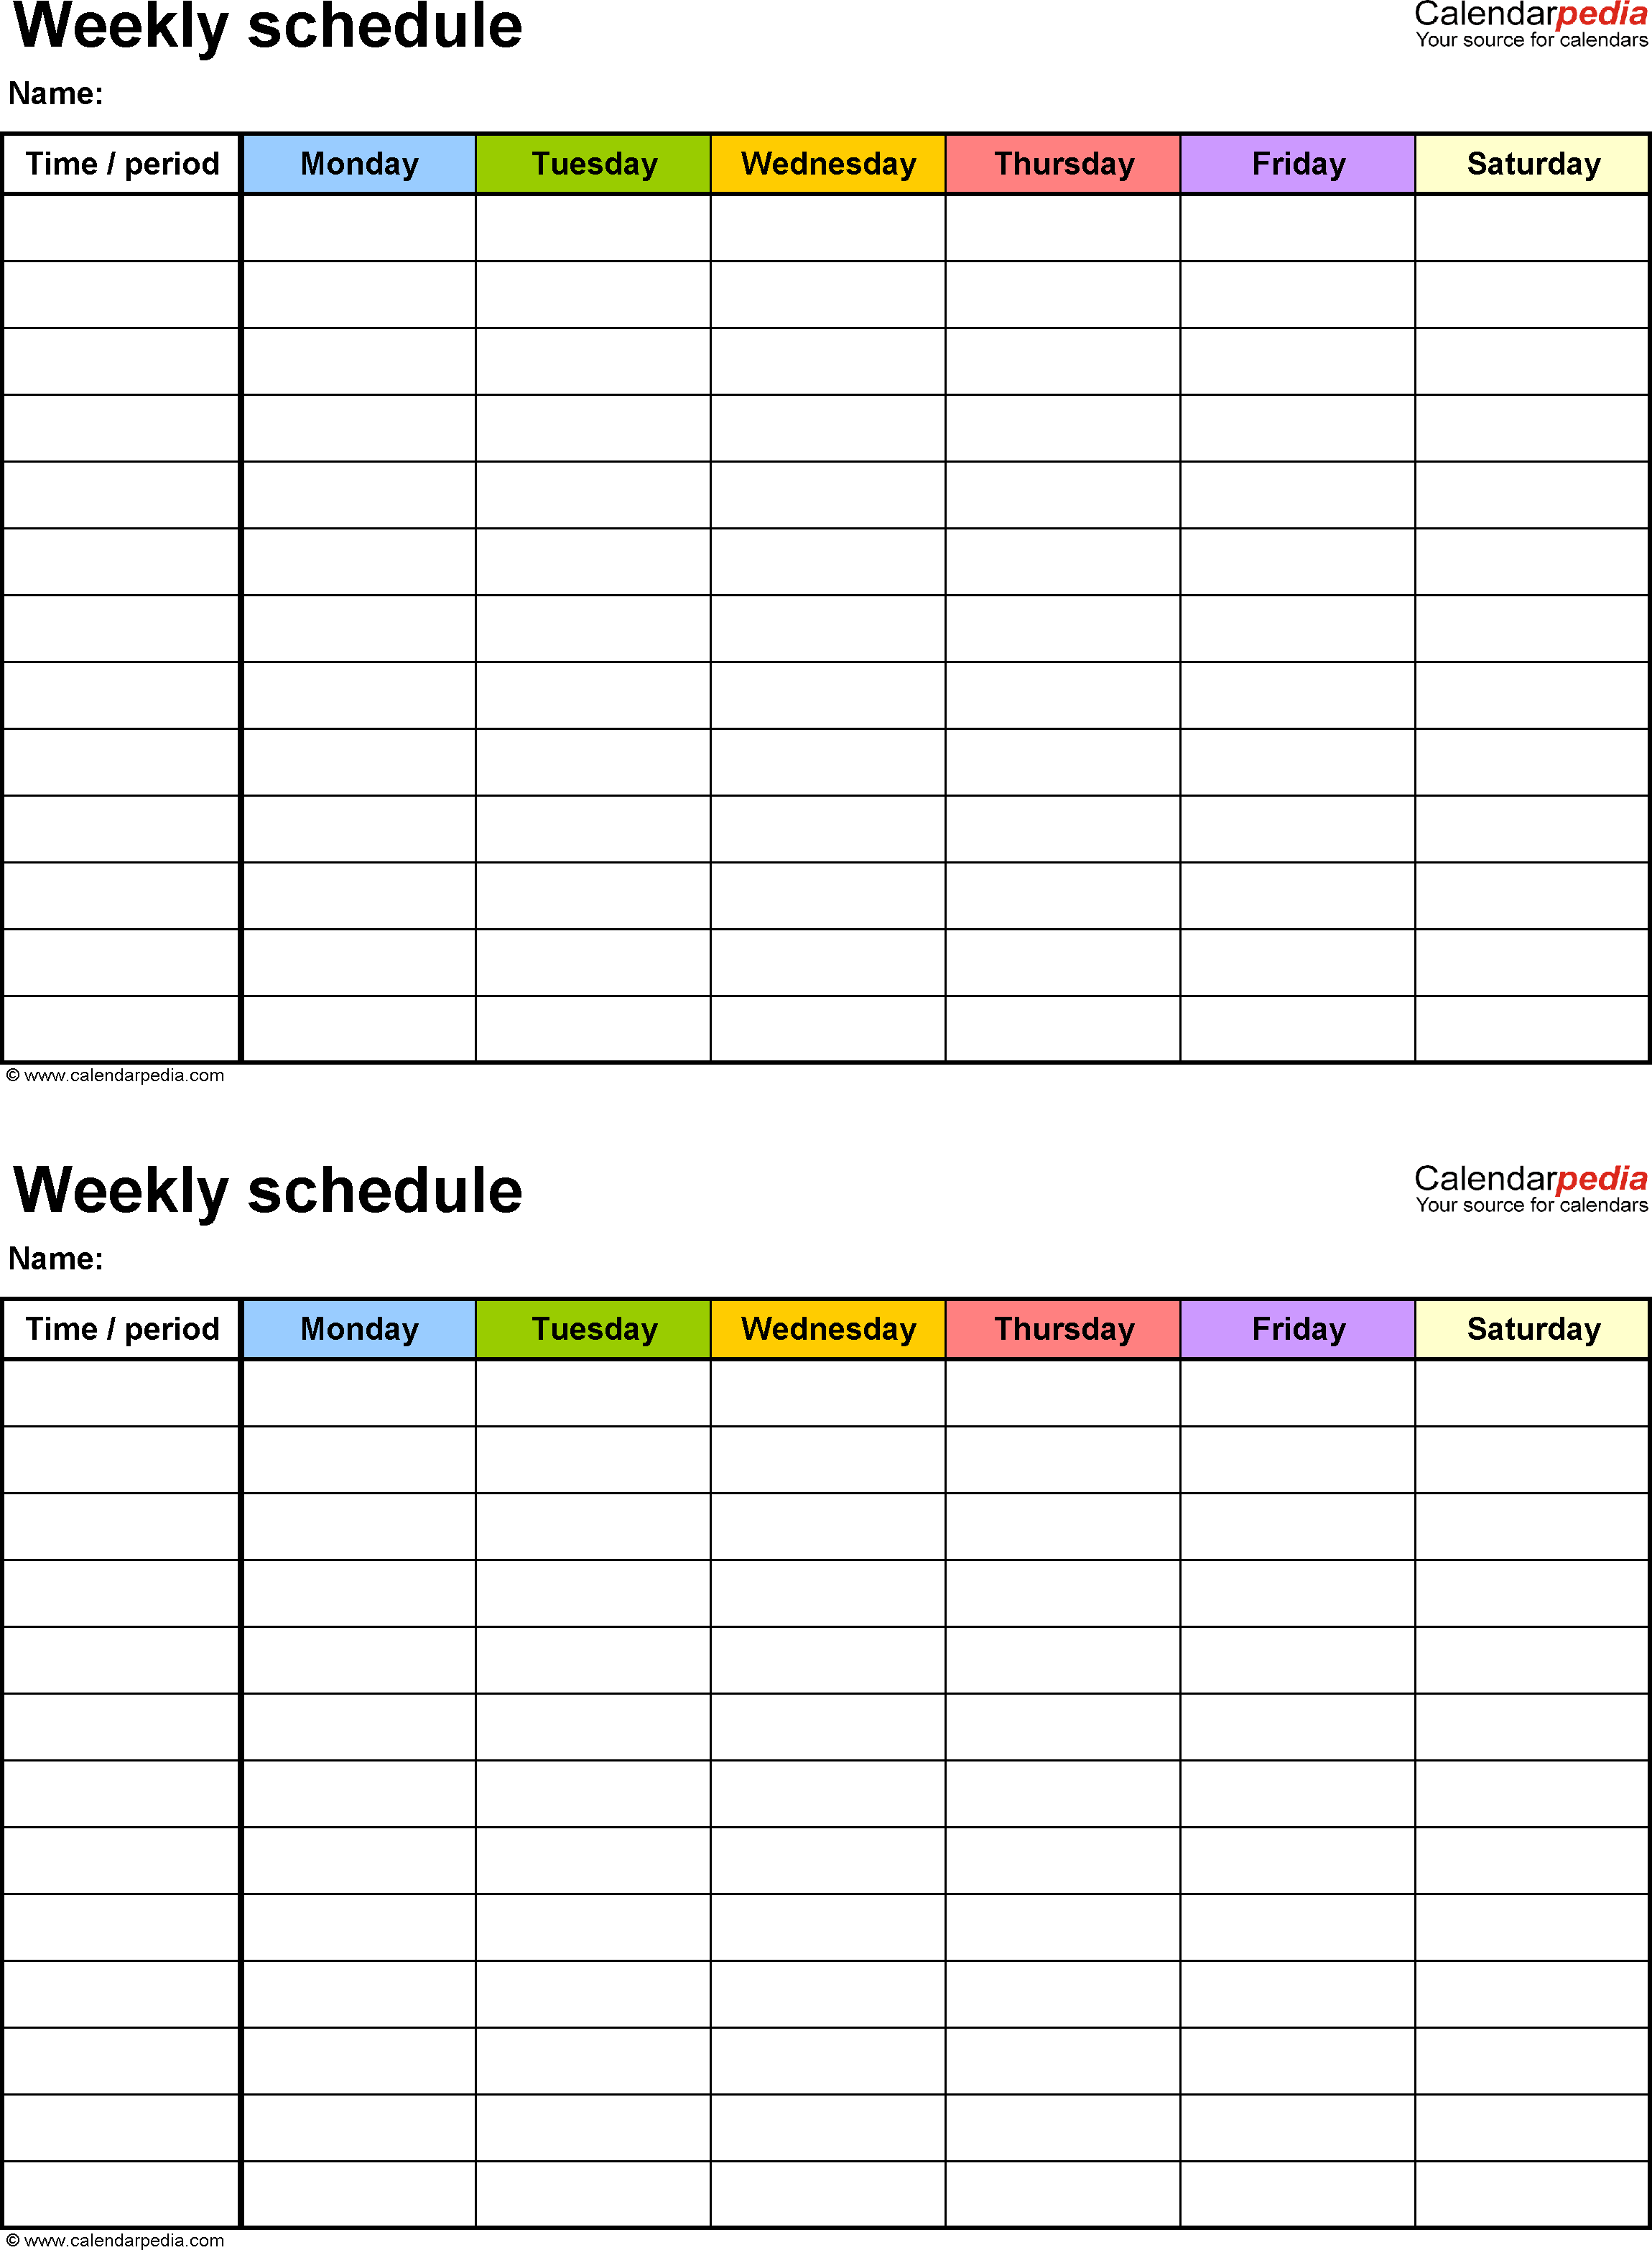 Schedule PDF files ideal for Printing